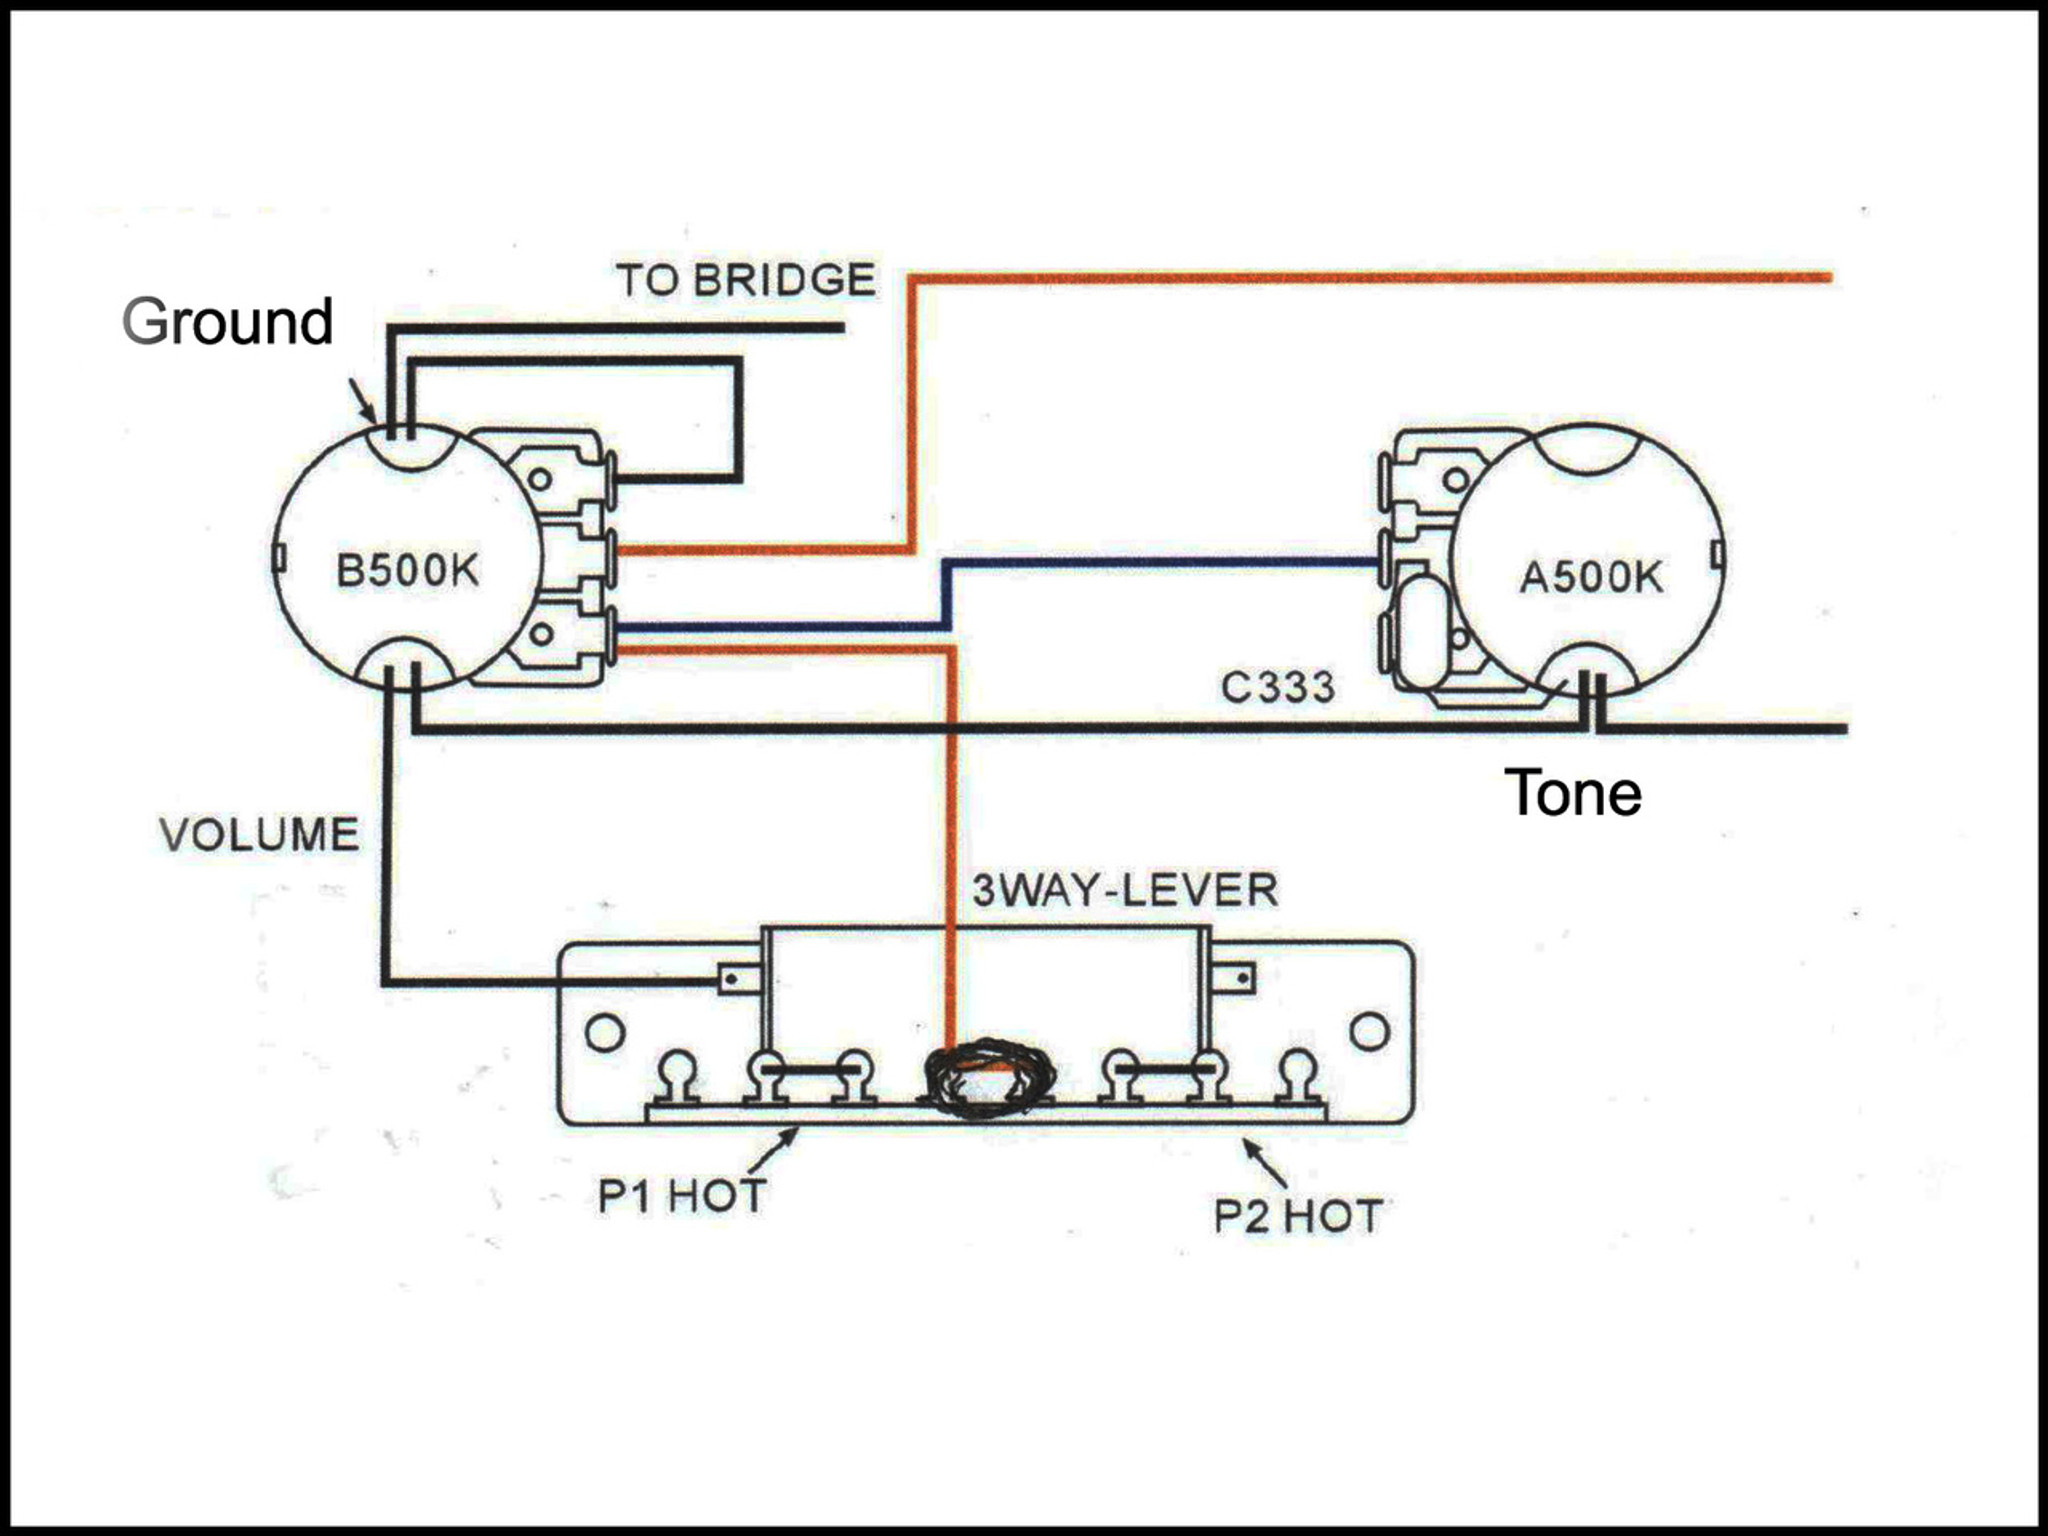 Basic 3 Way Switch Wiring Diagram A Lights Detailed For Ceiling Fan Light Electrical Diy Chatroom Guitar Pickup Toggle C B Gitty Crafter Supply Dimmer